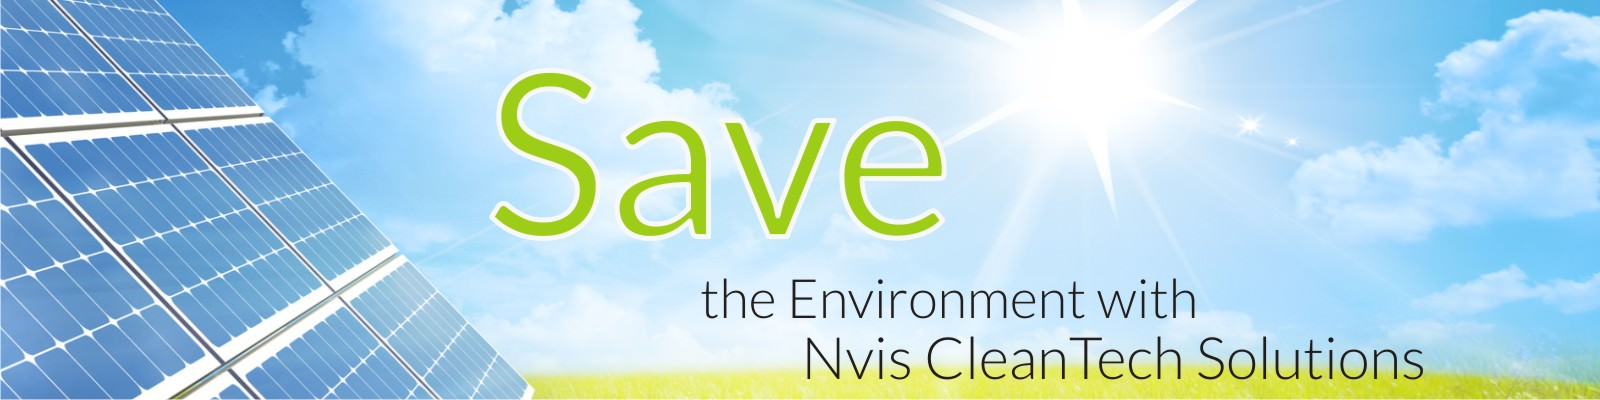 Nvis Cleantech Solutions